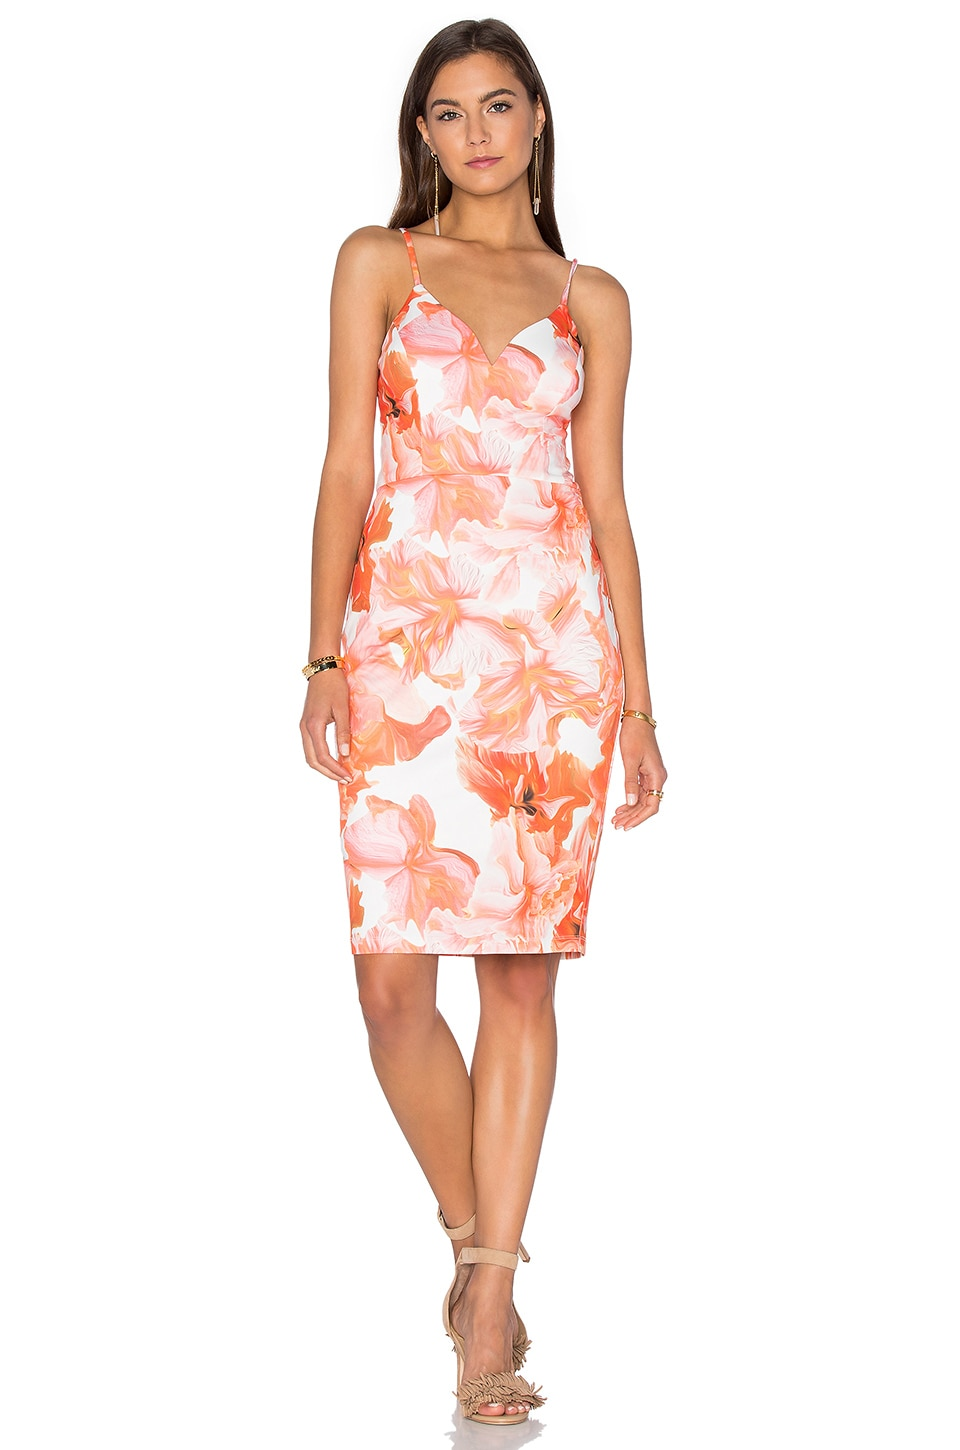 Lumier Marble Floral Midi Dress in Orange Floral